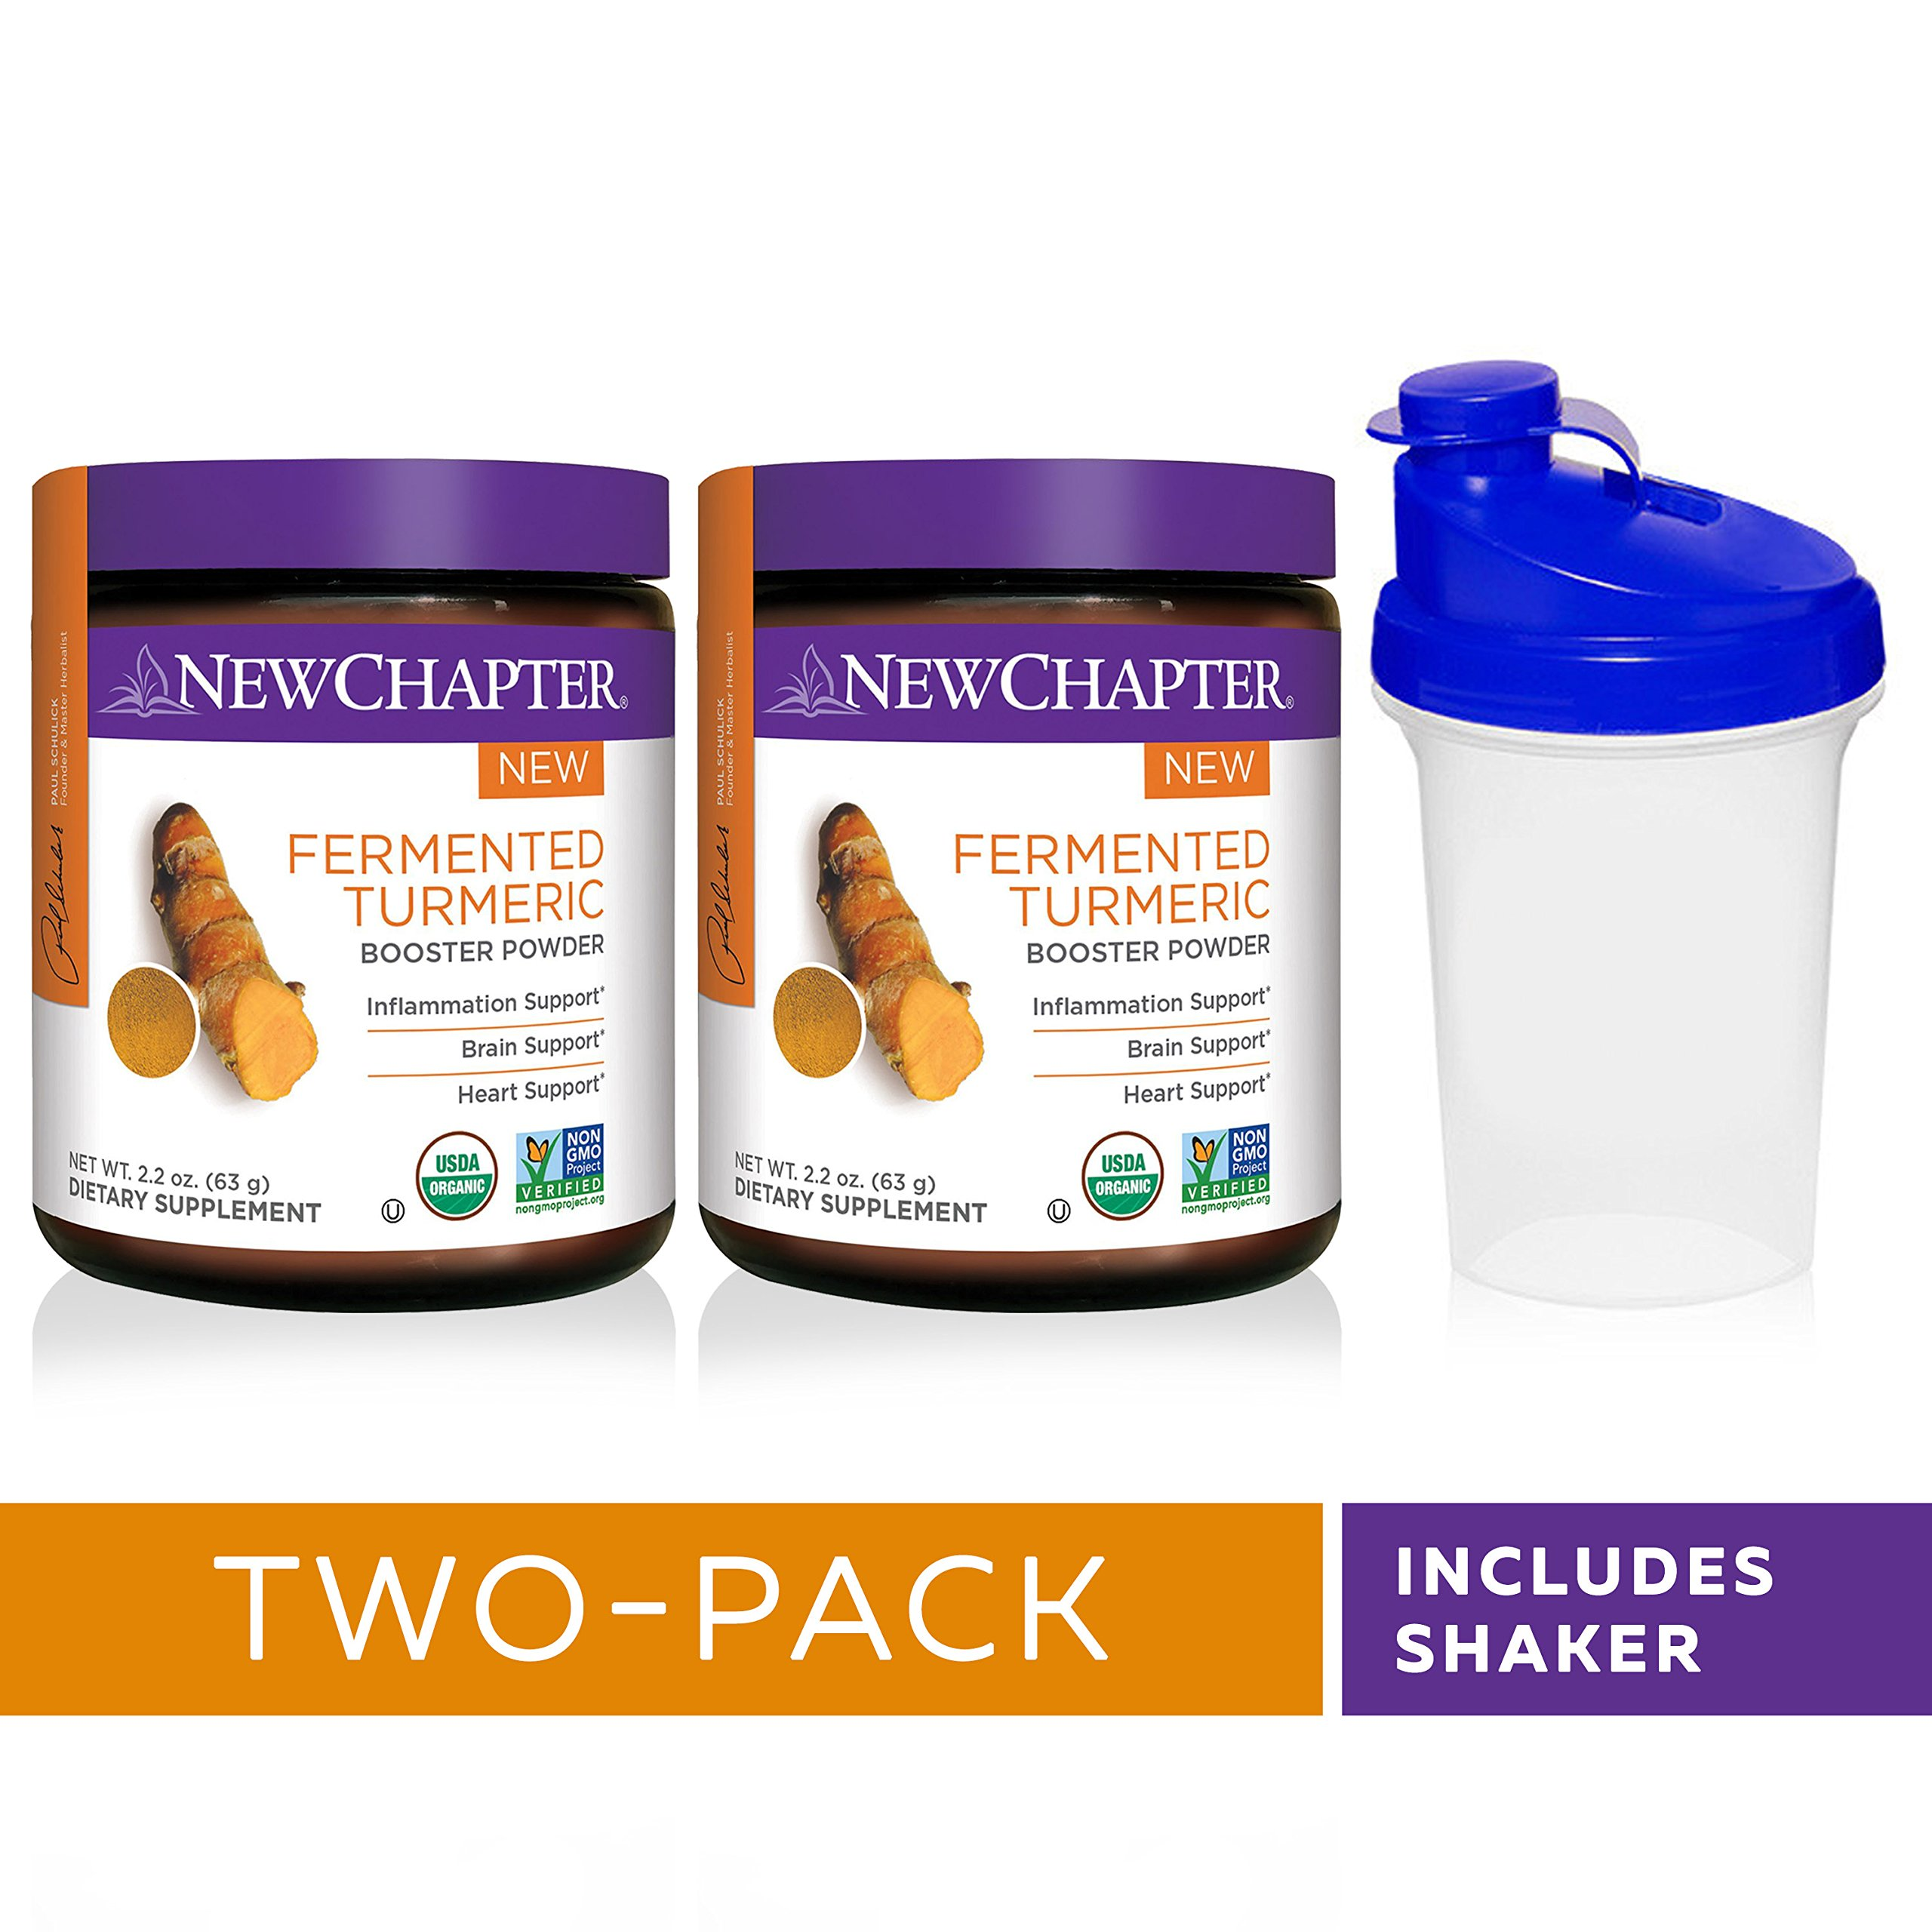 New Chapter Organic Turmeric Powder - Fermented Turmeric Booster Powder for Brain, Heart and Inflammation Support – 45 Servings with Shaker Cup (Pack of 2)